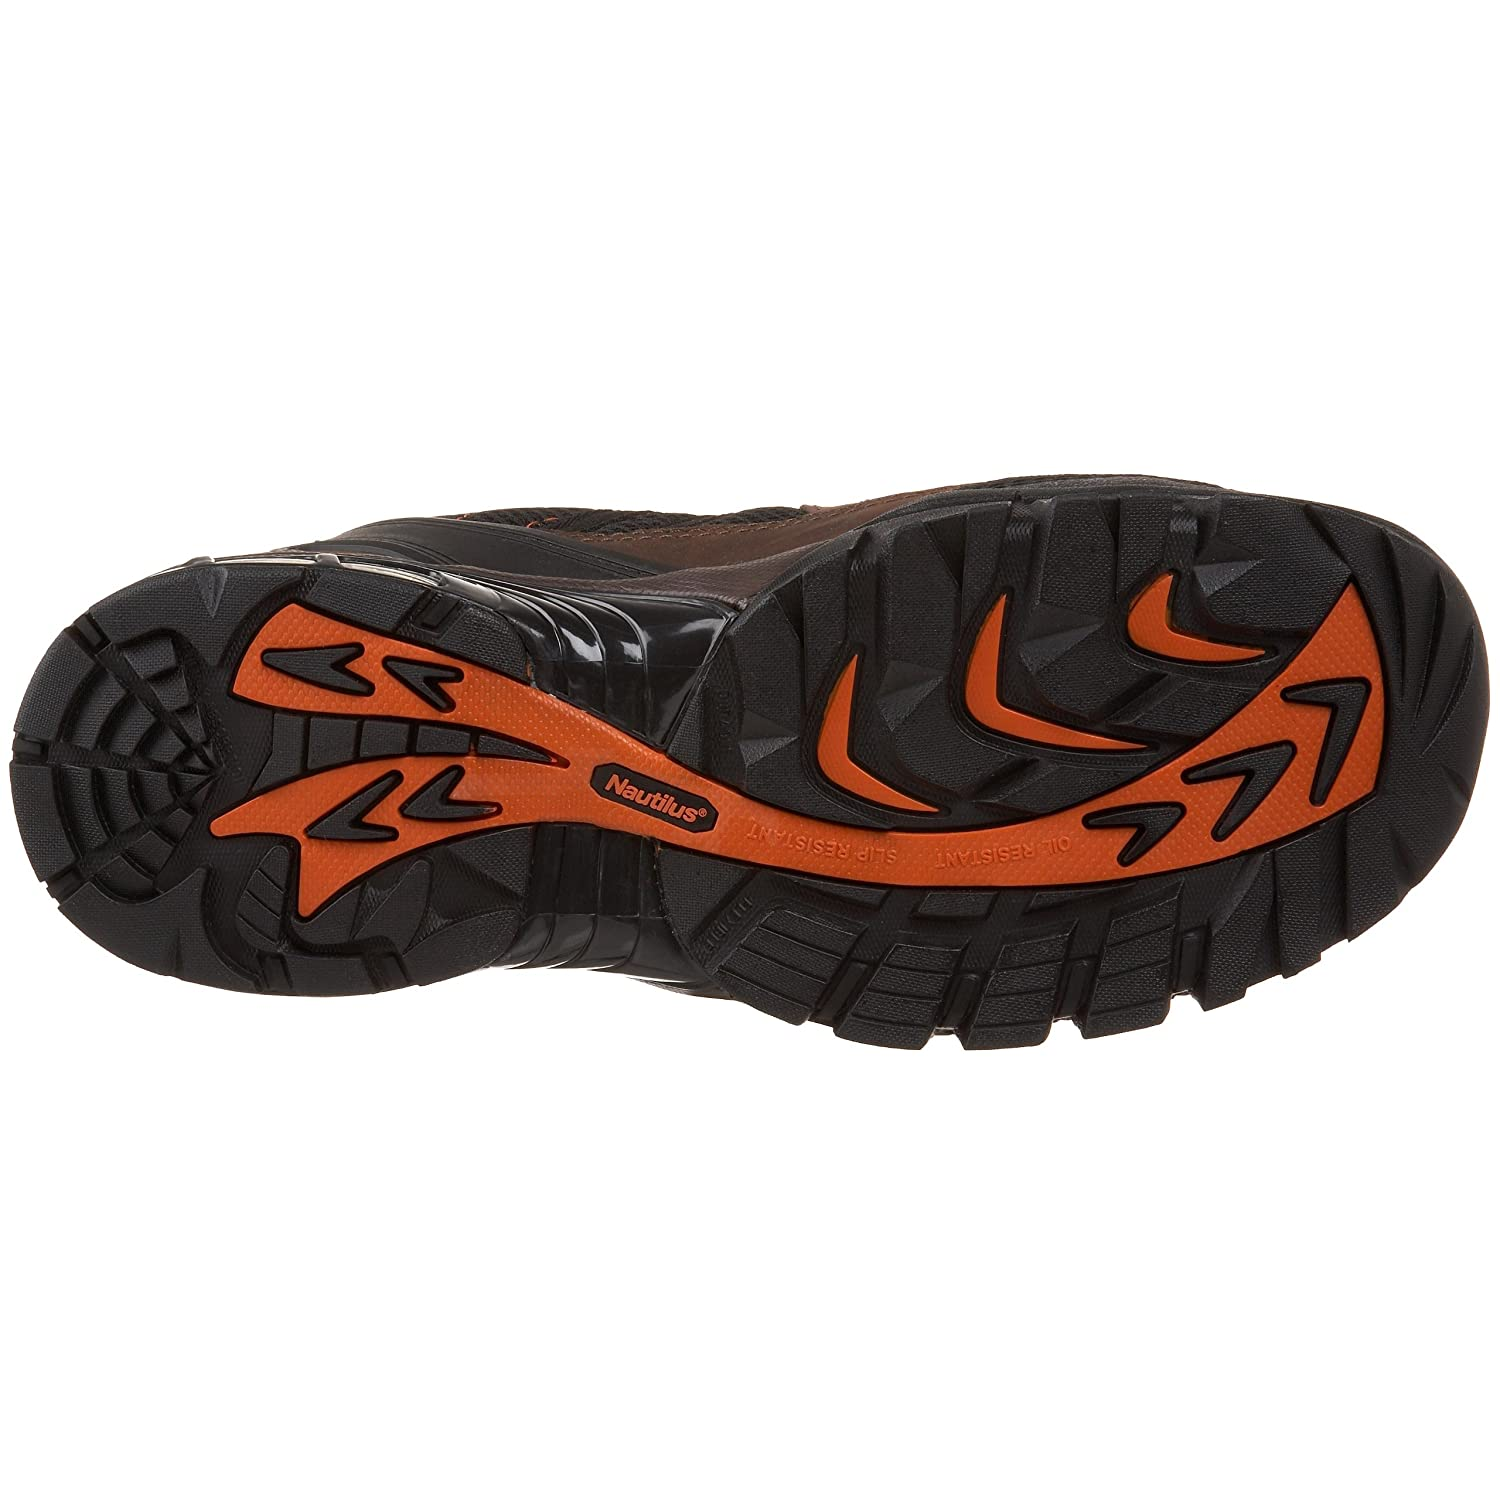 Amazon.com: Nautilus 1700 Comp Toe No Exposed Metal EH Athletic Shoe: Shoes